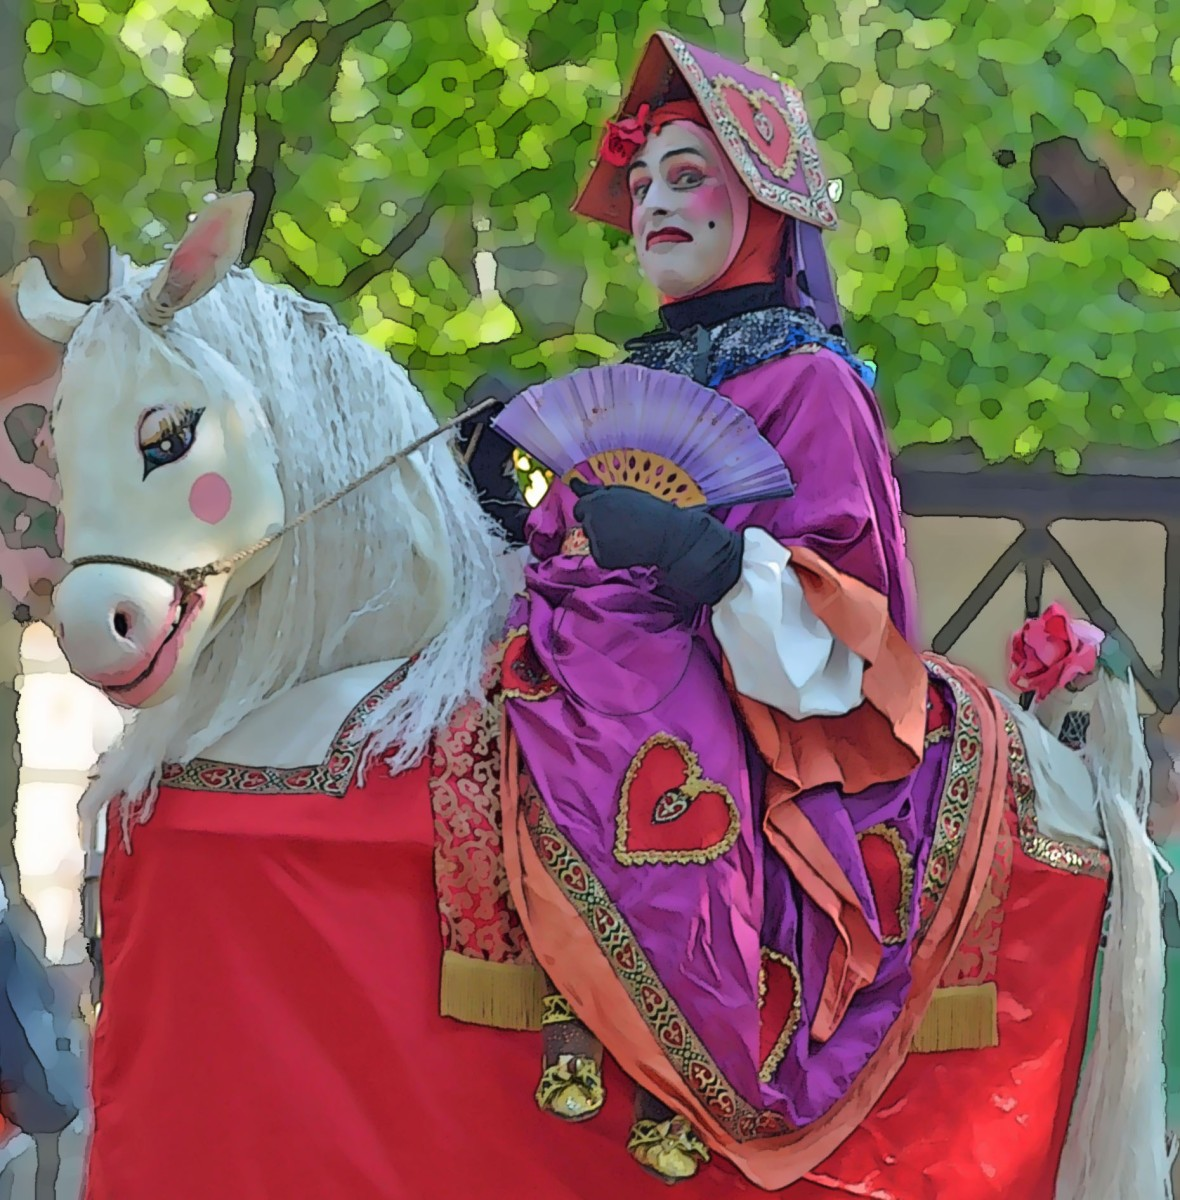 The queen of hearts shall ride her pretty pony in the parade.